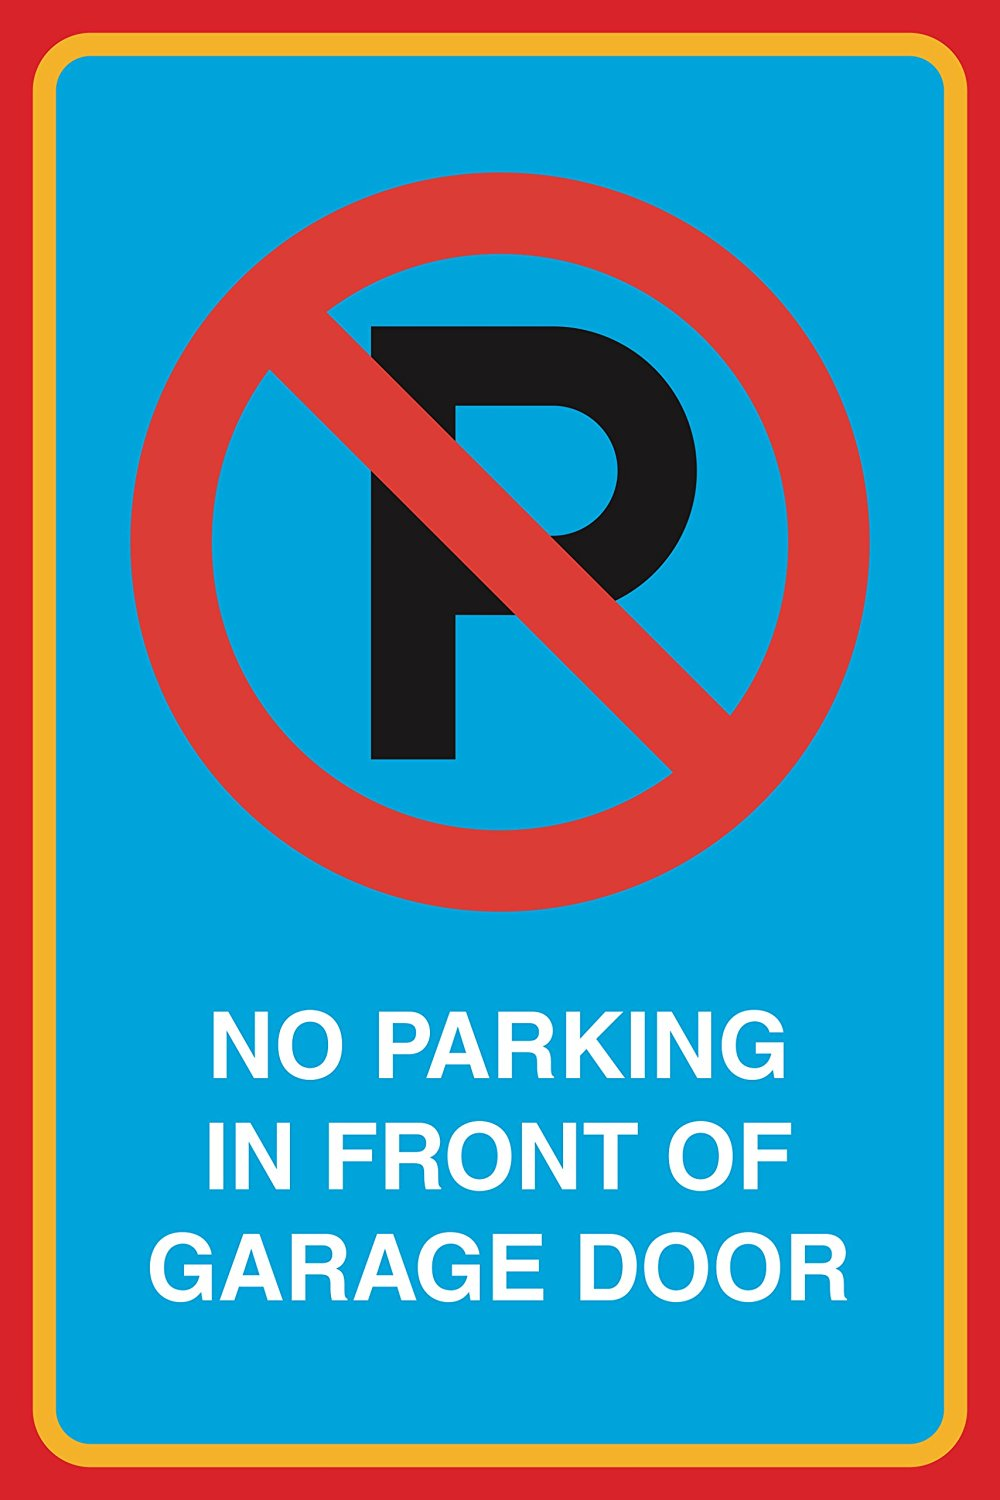 12x18 No Parking in Front of Gate Large Print Red Black White Poster Car Picture Symbol Notice Business Home Sign